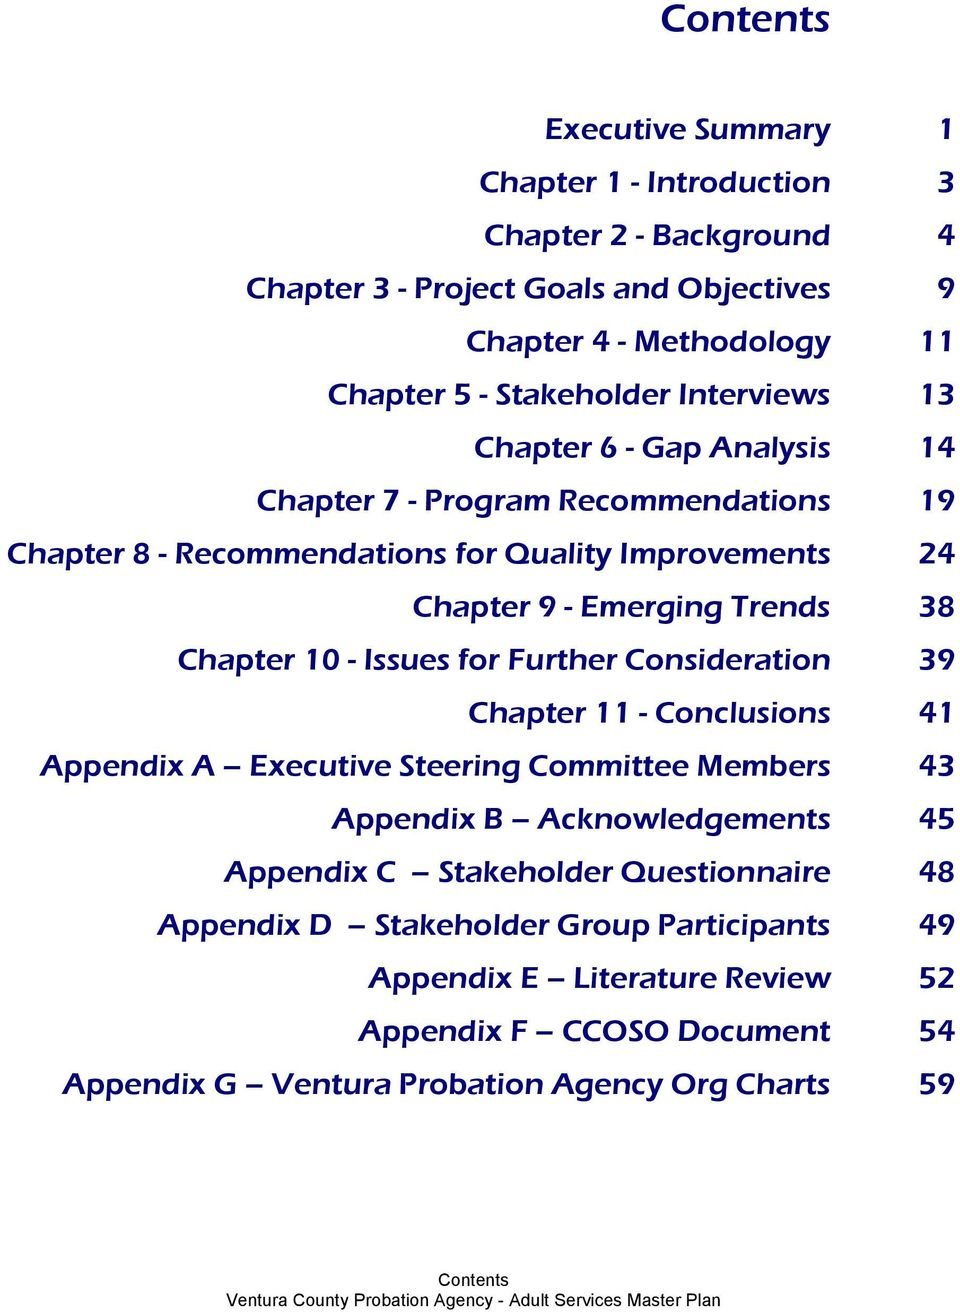 Consideration Chapter 11 - Conclusions Appendix A Executive Steering Committee Members Appendix B Acknowledgements Appendix C Stakeholder Questionnaire Appendix D Stakeholder